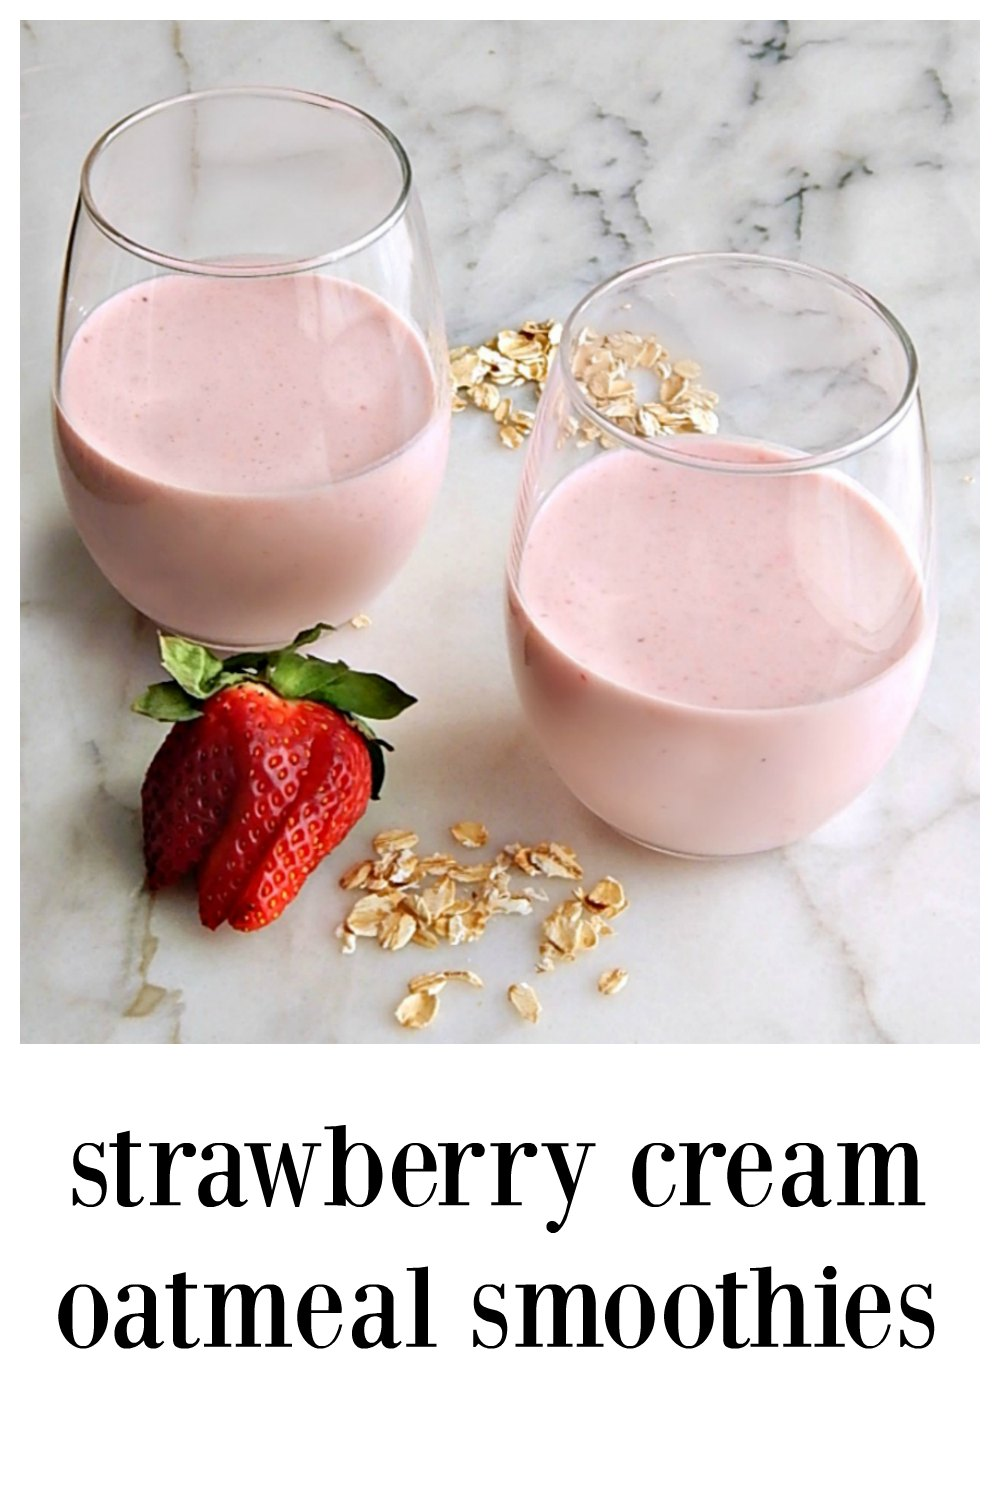 Strawberry Cream Oatmeal Smoothie: super simple, full of healthy, natural ingredients and is ready in a shake! Use fresh or frozen berries, raw or cooked oatmeal (a great way to use any leftover oatmeal!) #StrawberryOatmealSmoothies #BerryOatmealSmoothies #StrawberryCreamOatmealSmoothies